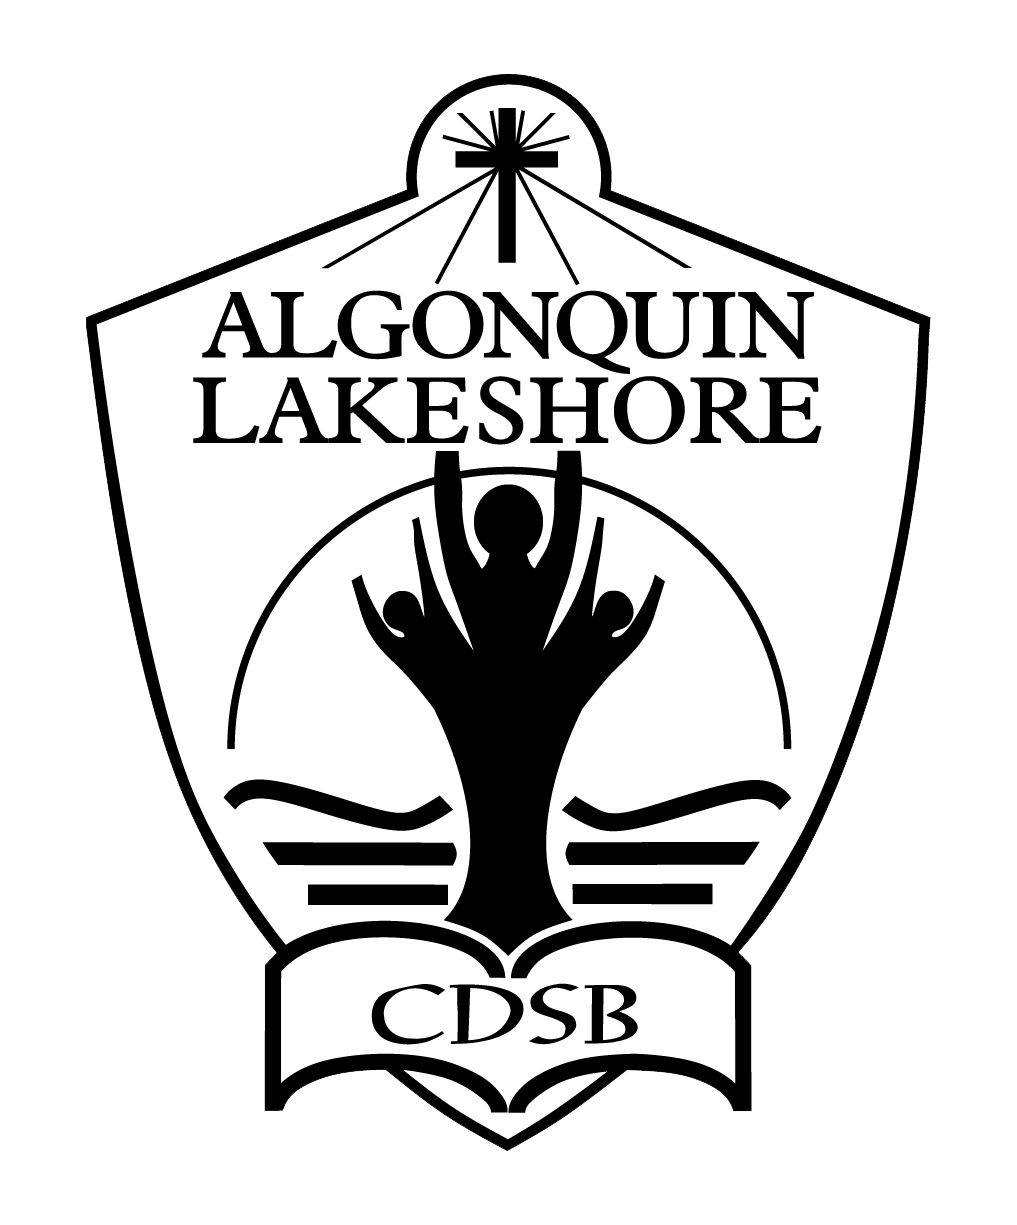 ALCDSB_logo_solid_black_Transparent.png